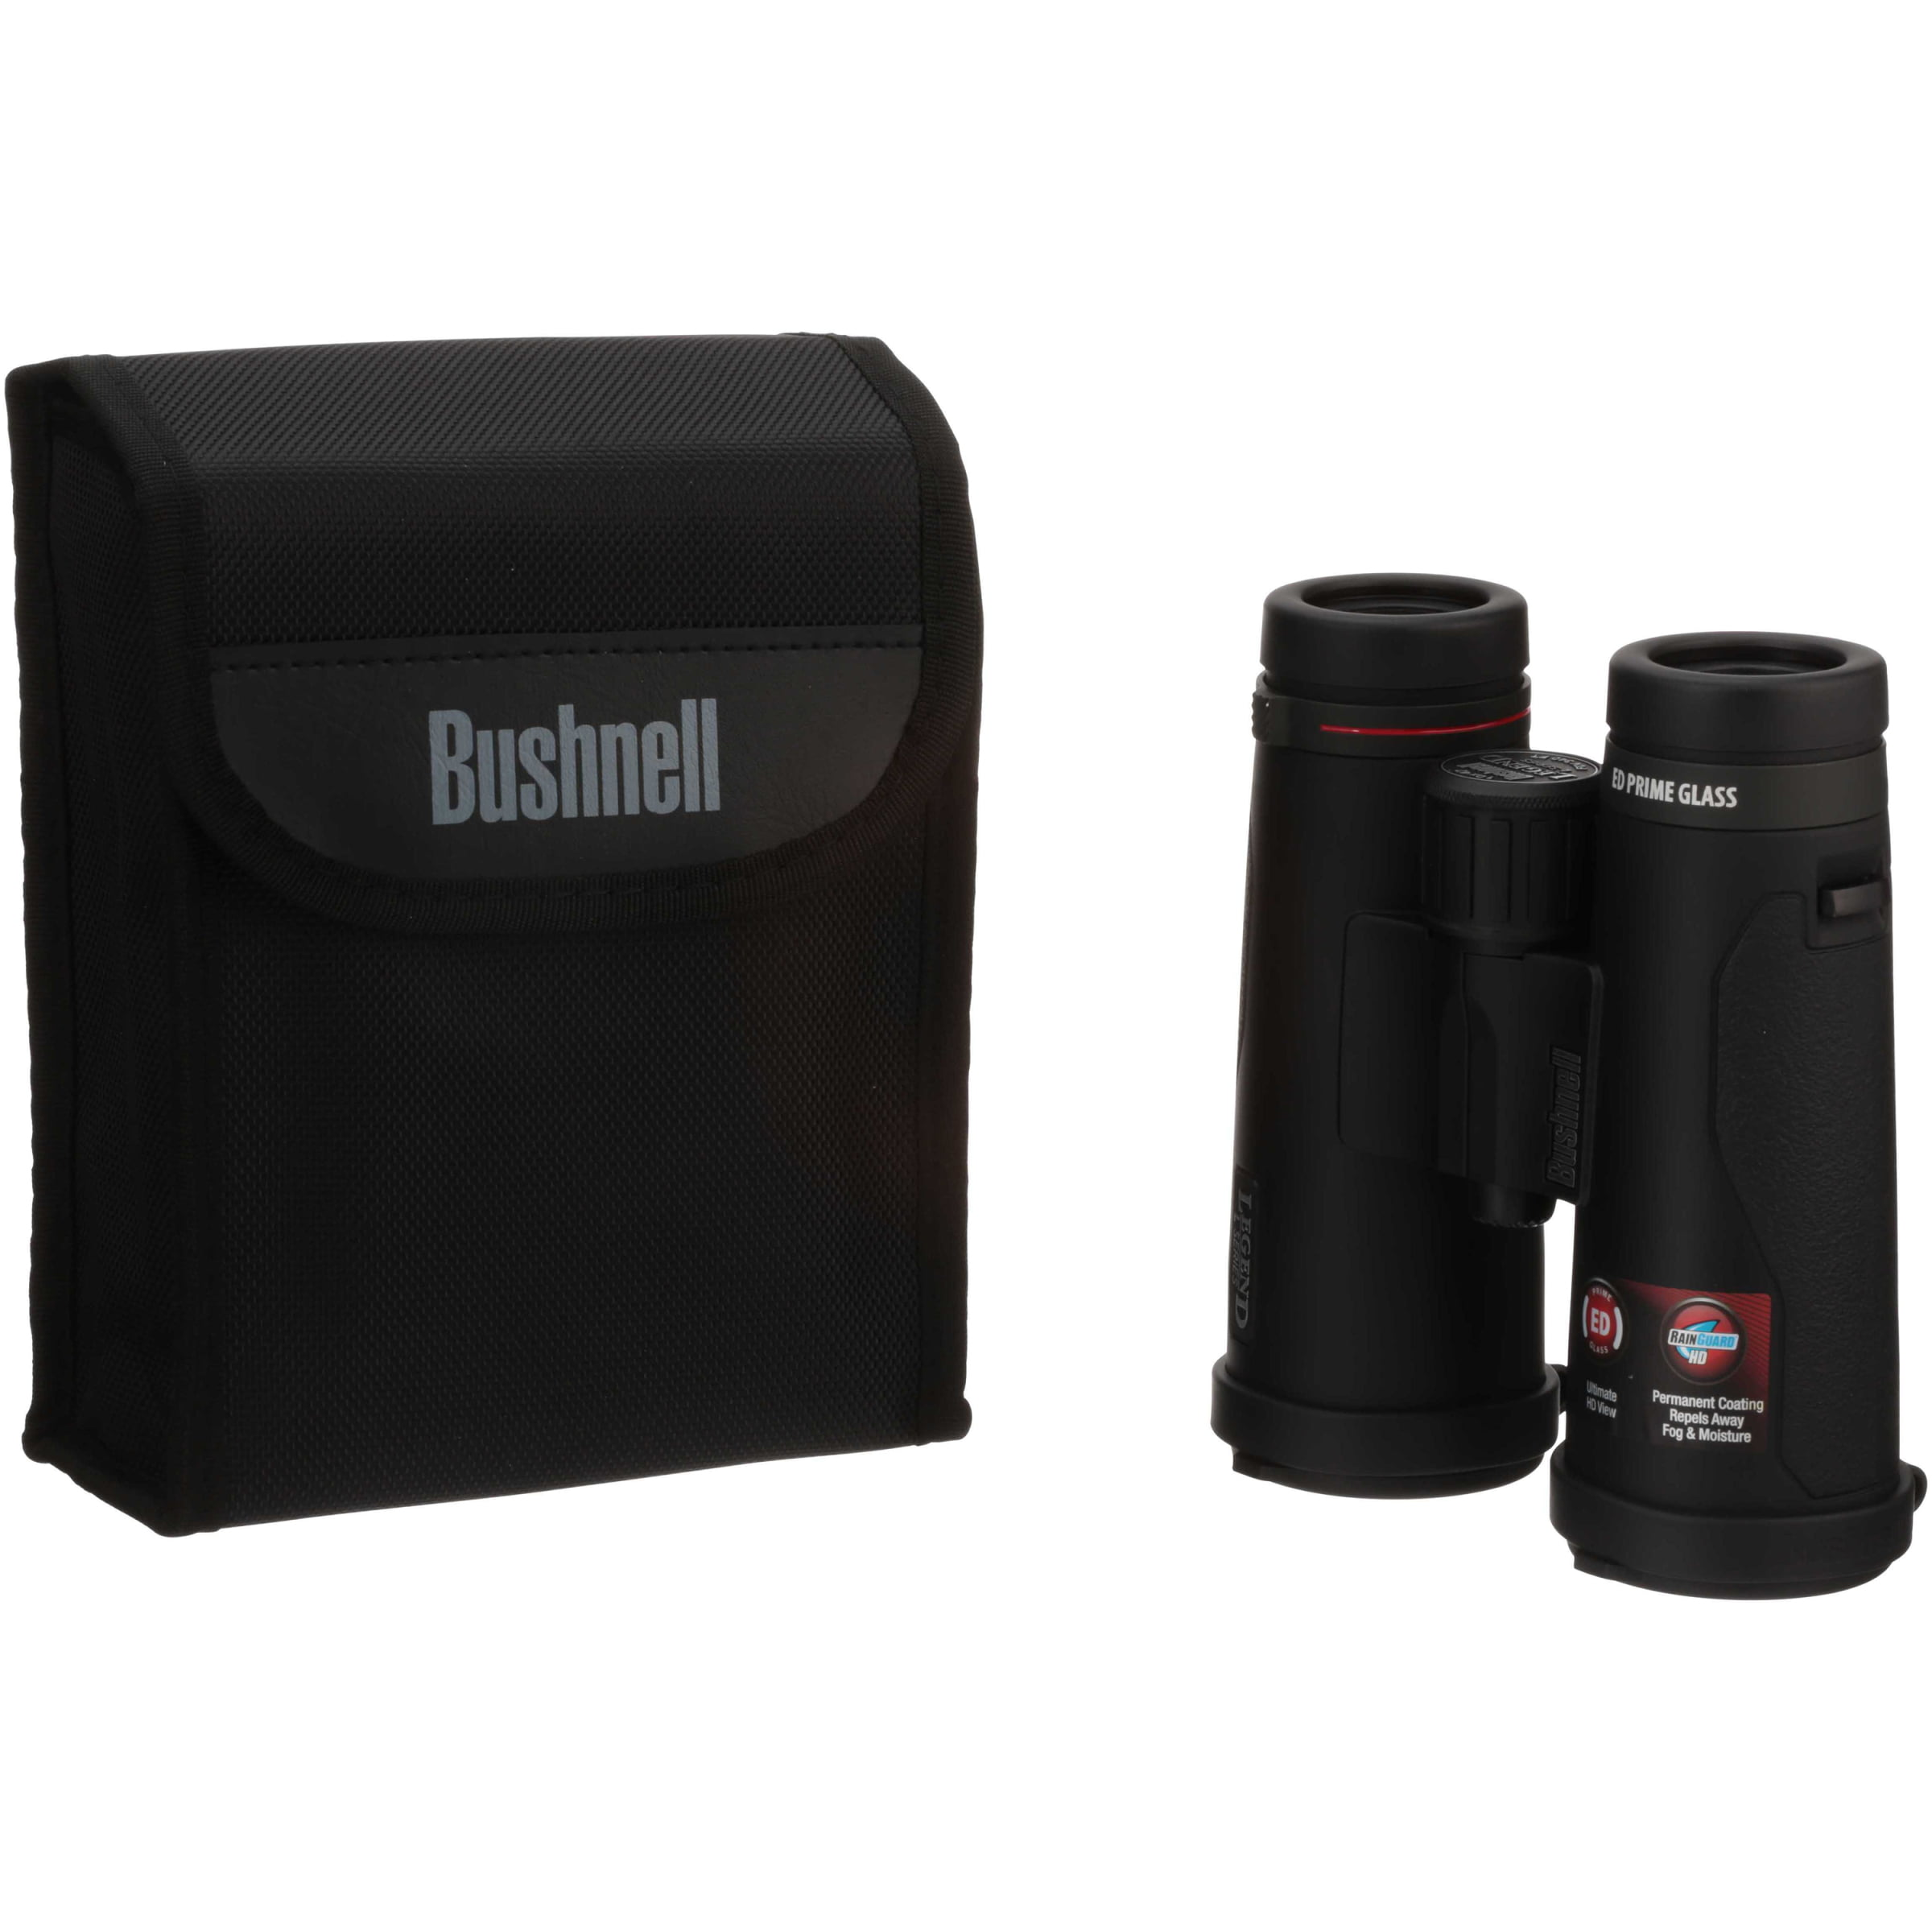 Bushnell Legend L Series 10x 42mm Binocular by Bushnell Outdoor Products